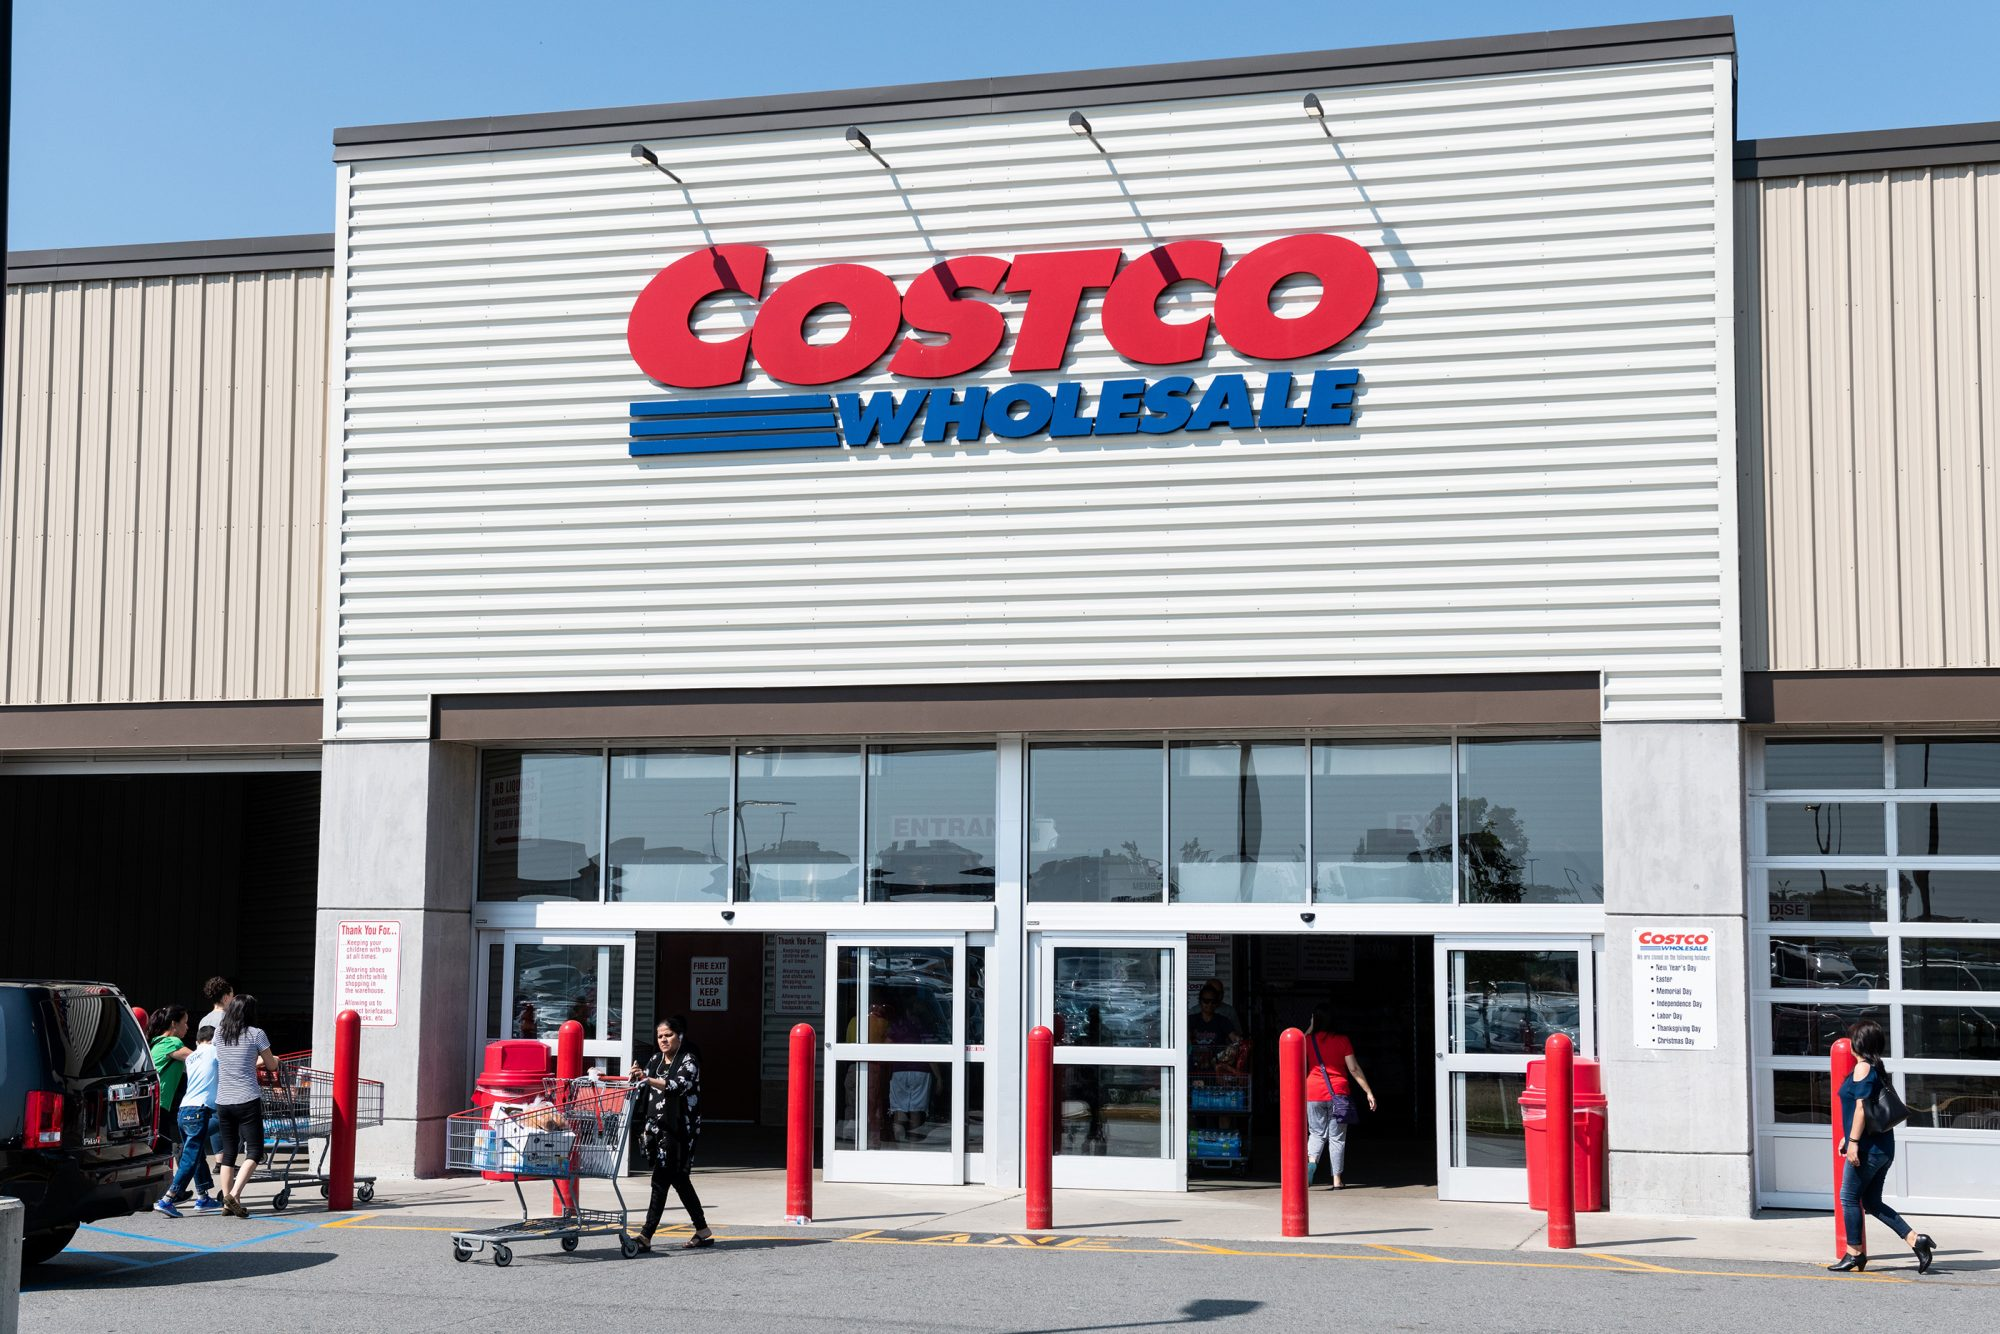 6 Things You Should NEVER Buy at Costco, According to Superfans